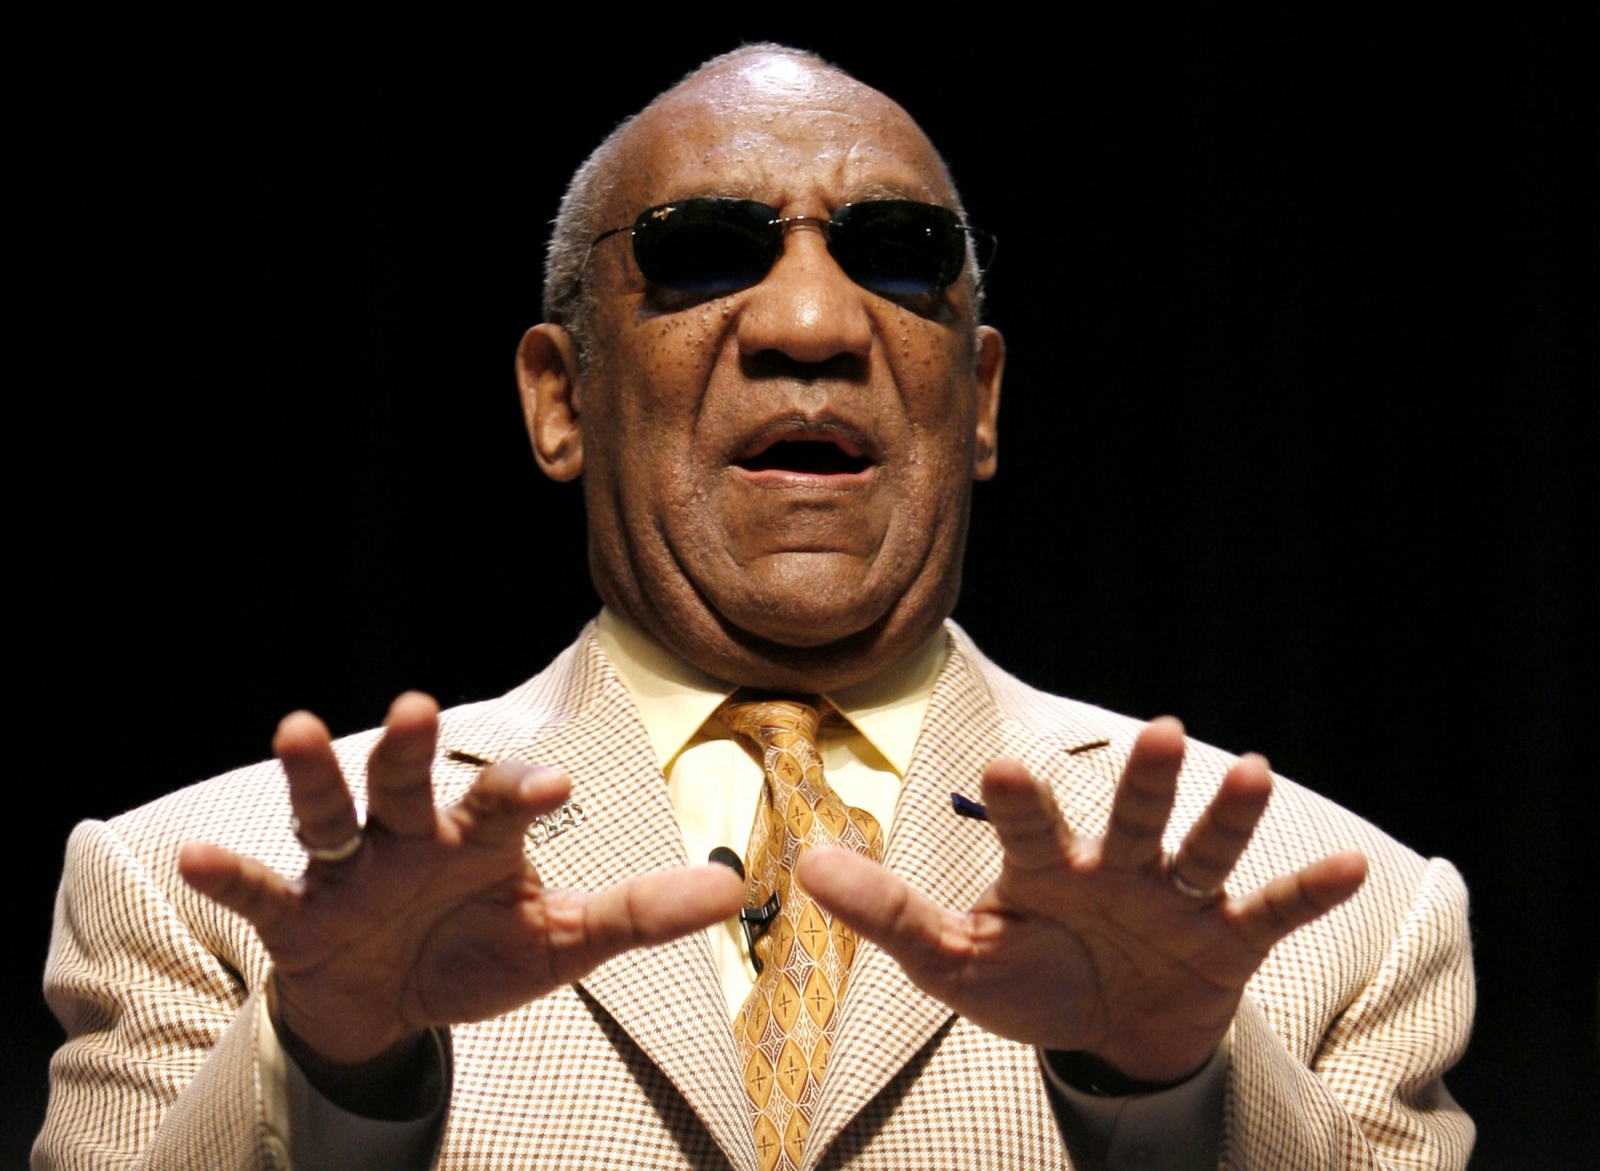 actor-comedian-author-bill-cosby-centre-